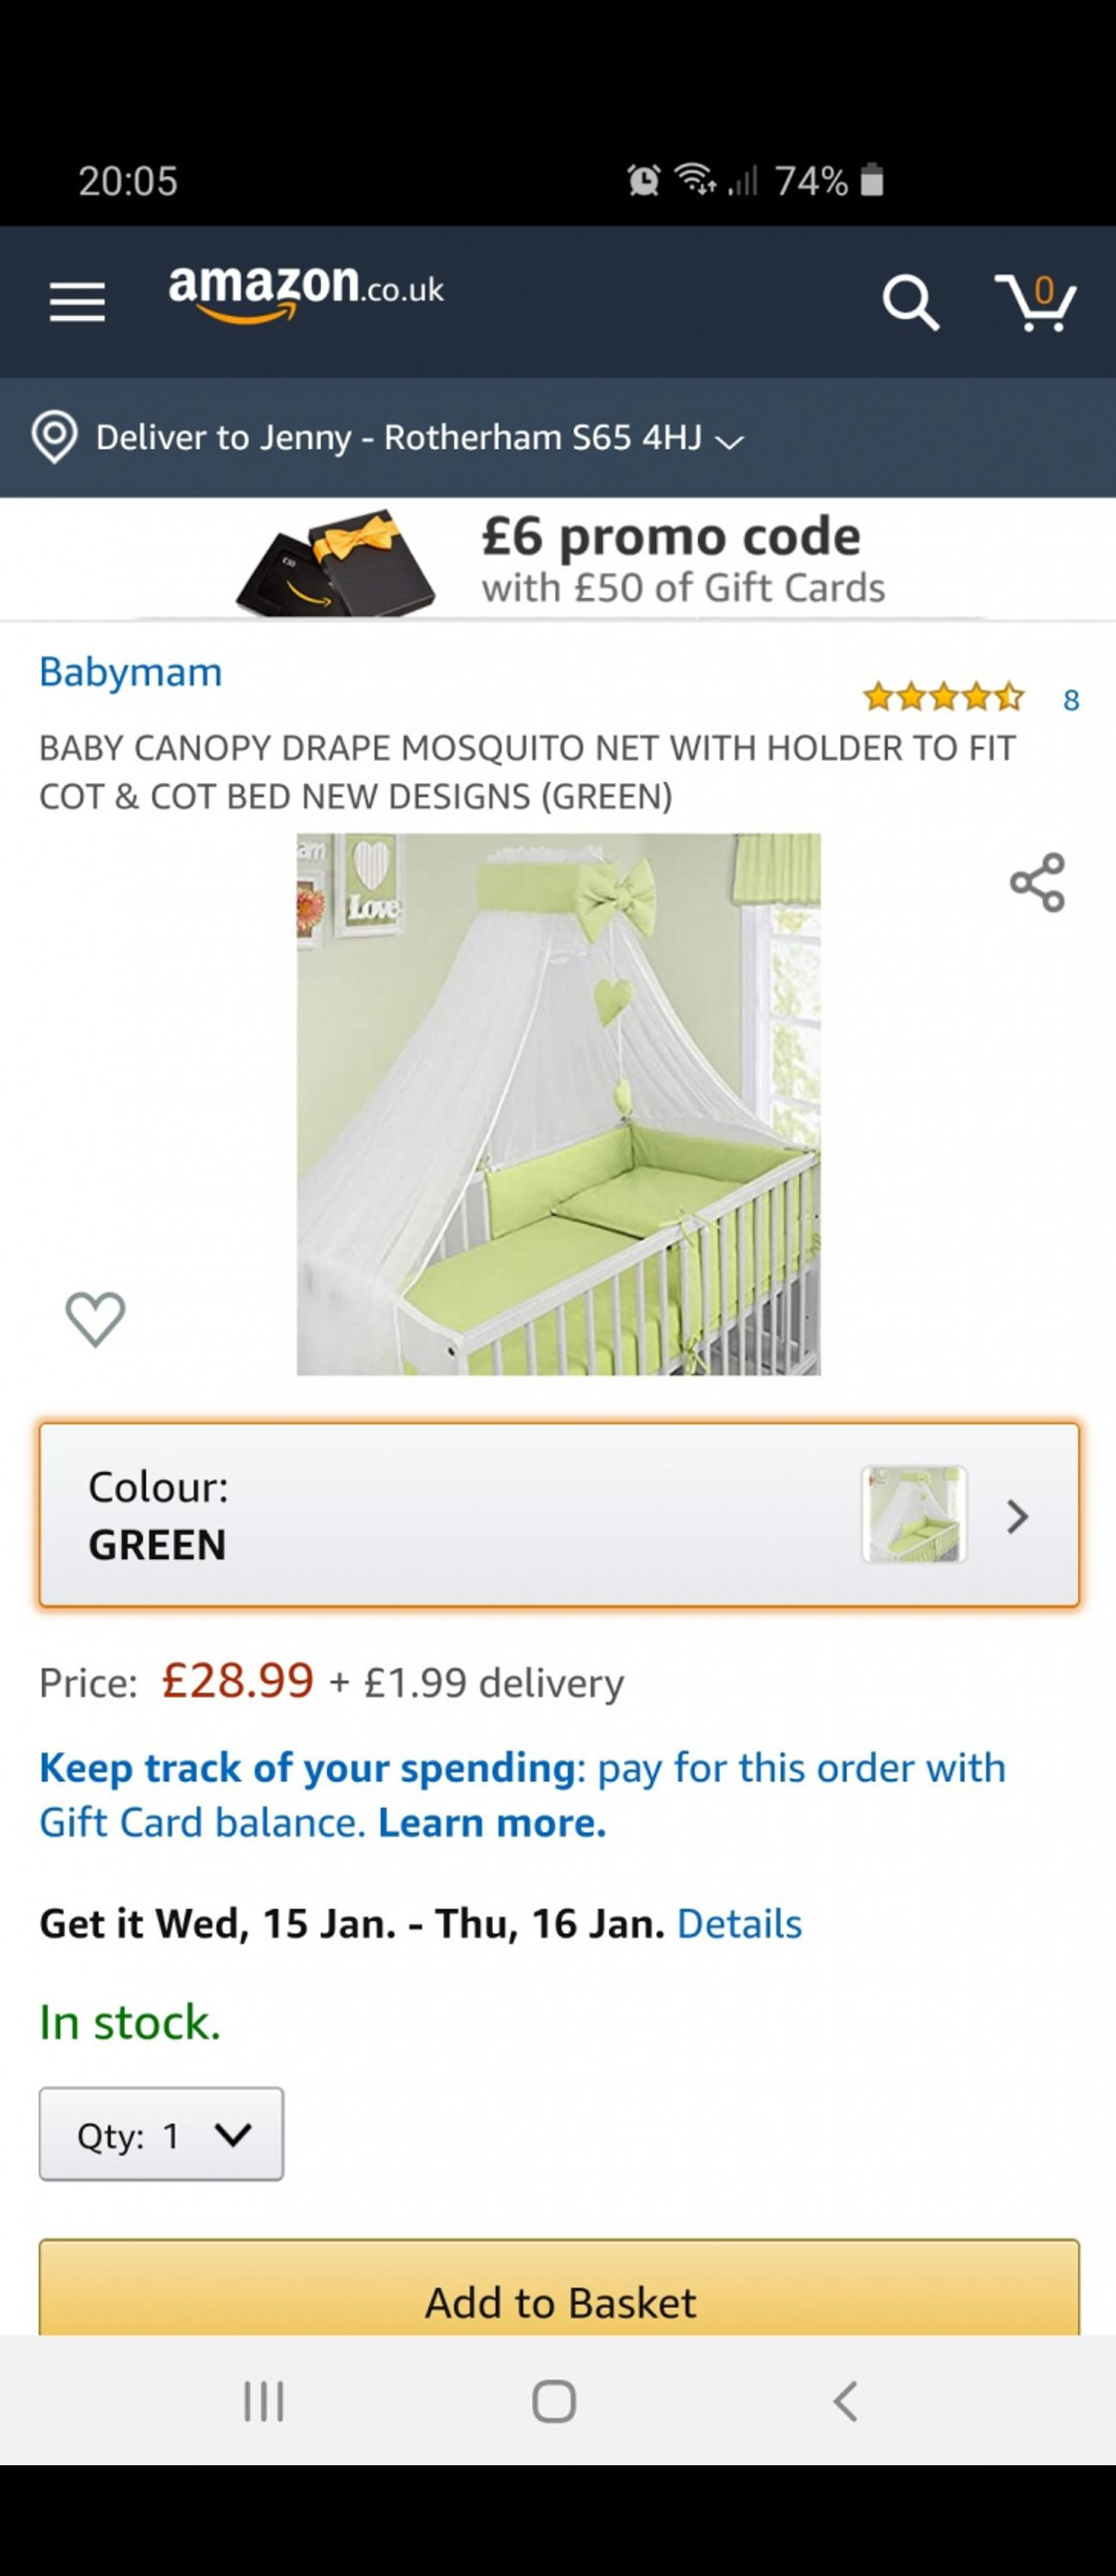 Cot bed canopy, canopy holder, decorative bow and ribbon with hearts, pale green, condition like new. The drape is made of airy chiffon, which does not deprive the child from light and air. Canopy allows you to cover all 4 sides of the cot and use it as a mosquito net - to protect your baby from insects and dirt. Used very little, in excellent condition. Been already washed and stored away. Cot bed, bedding and cot mobile are not included. Smoke and pet free home. Collection S65, Rotherham.